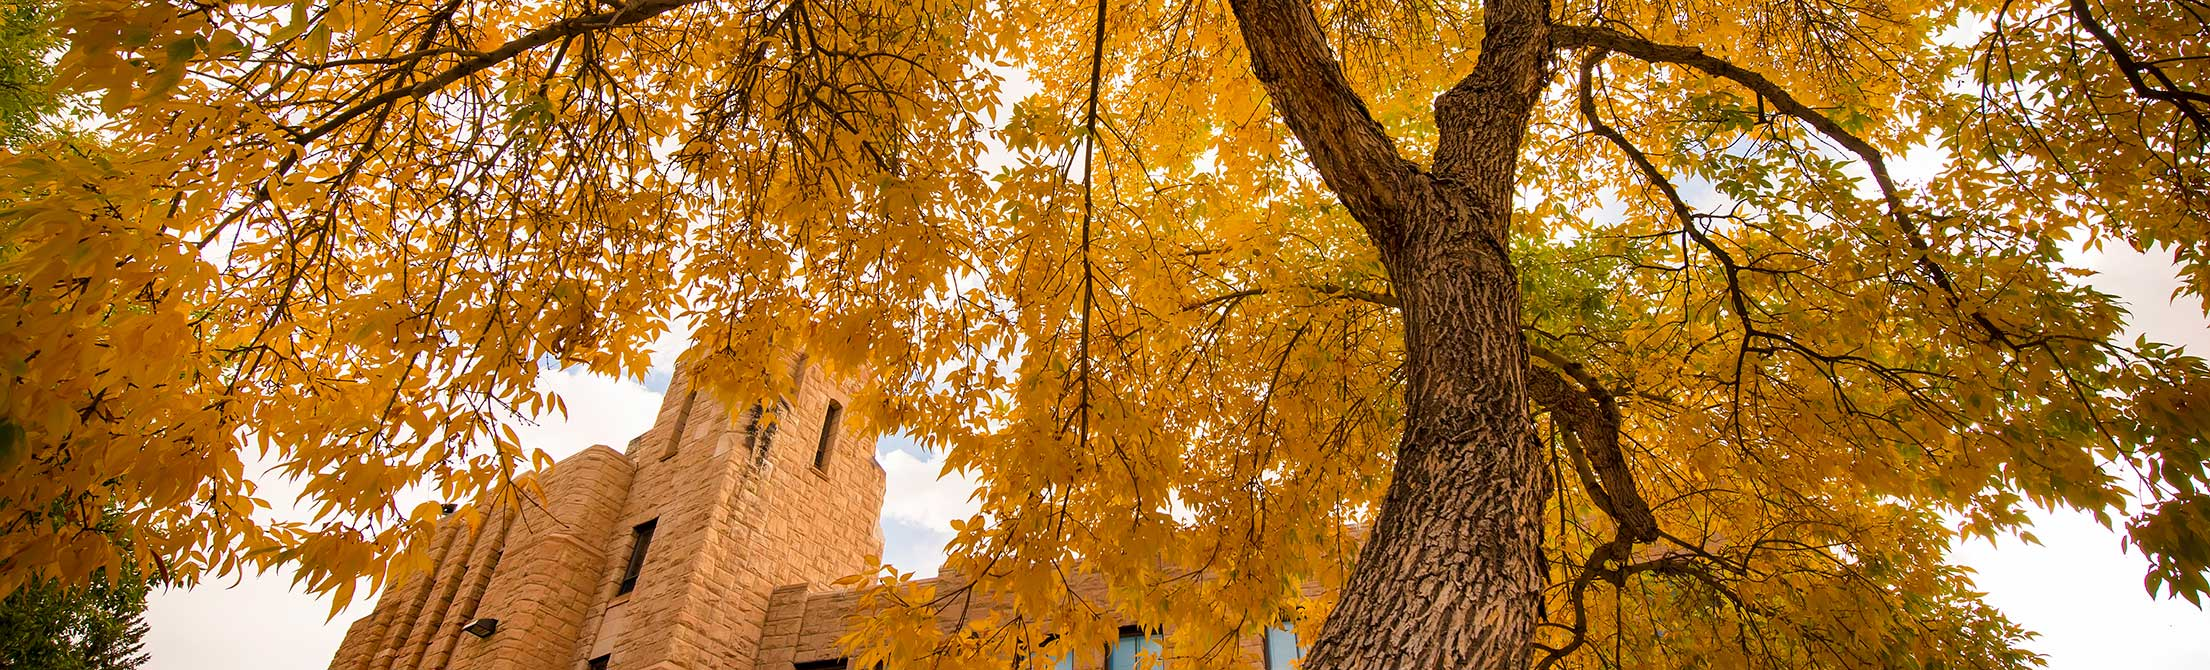 fall trees and building against sky